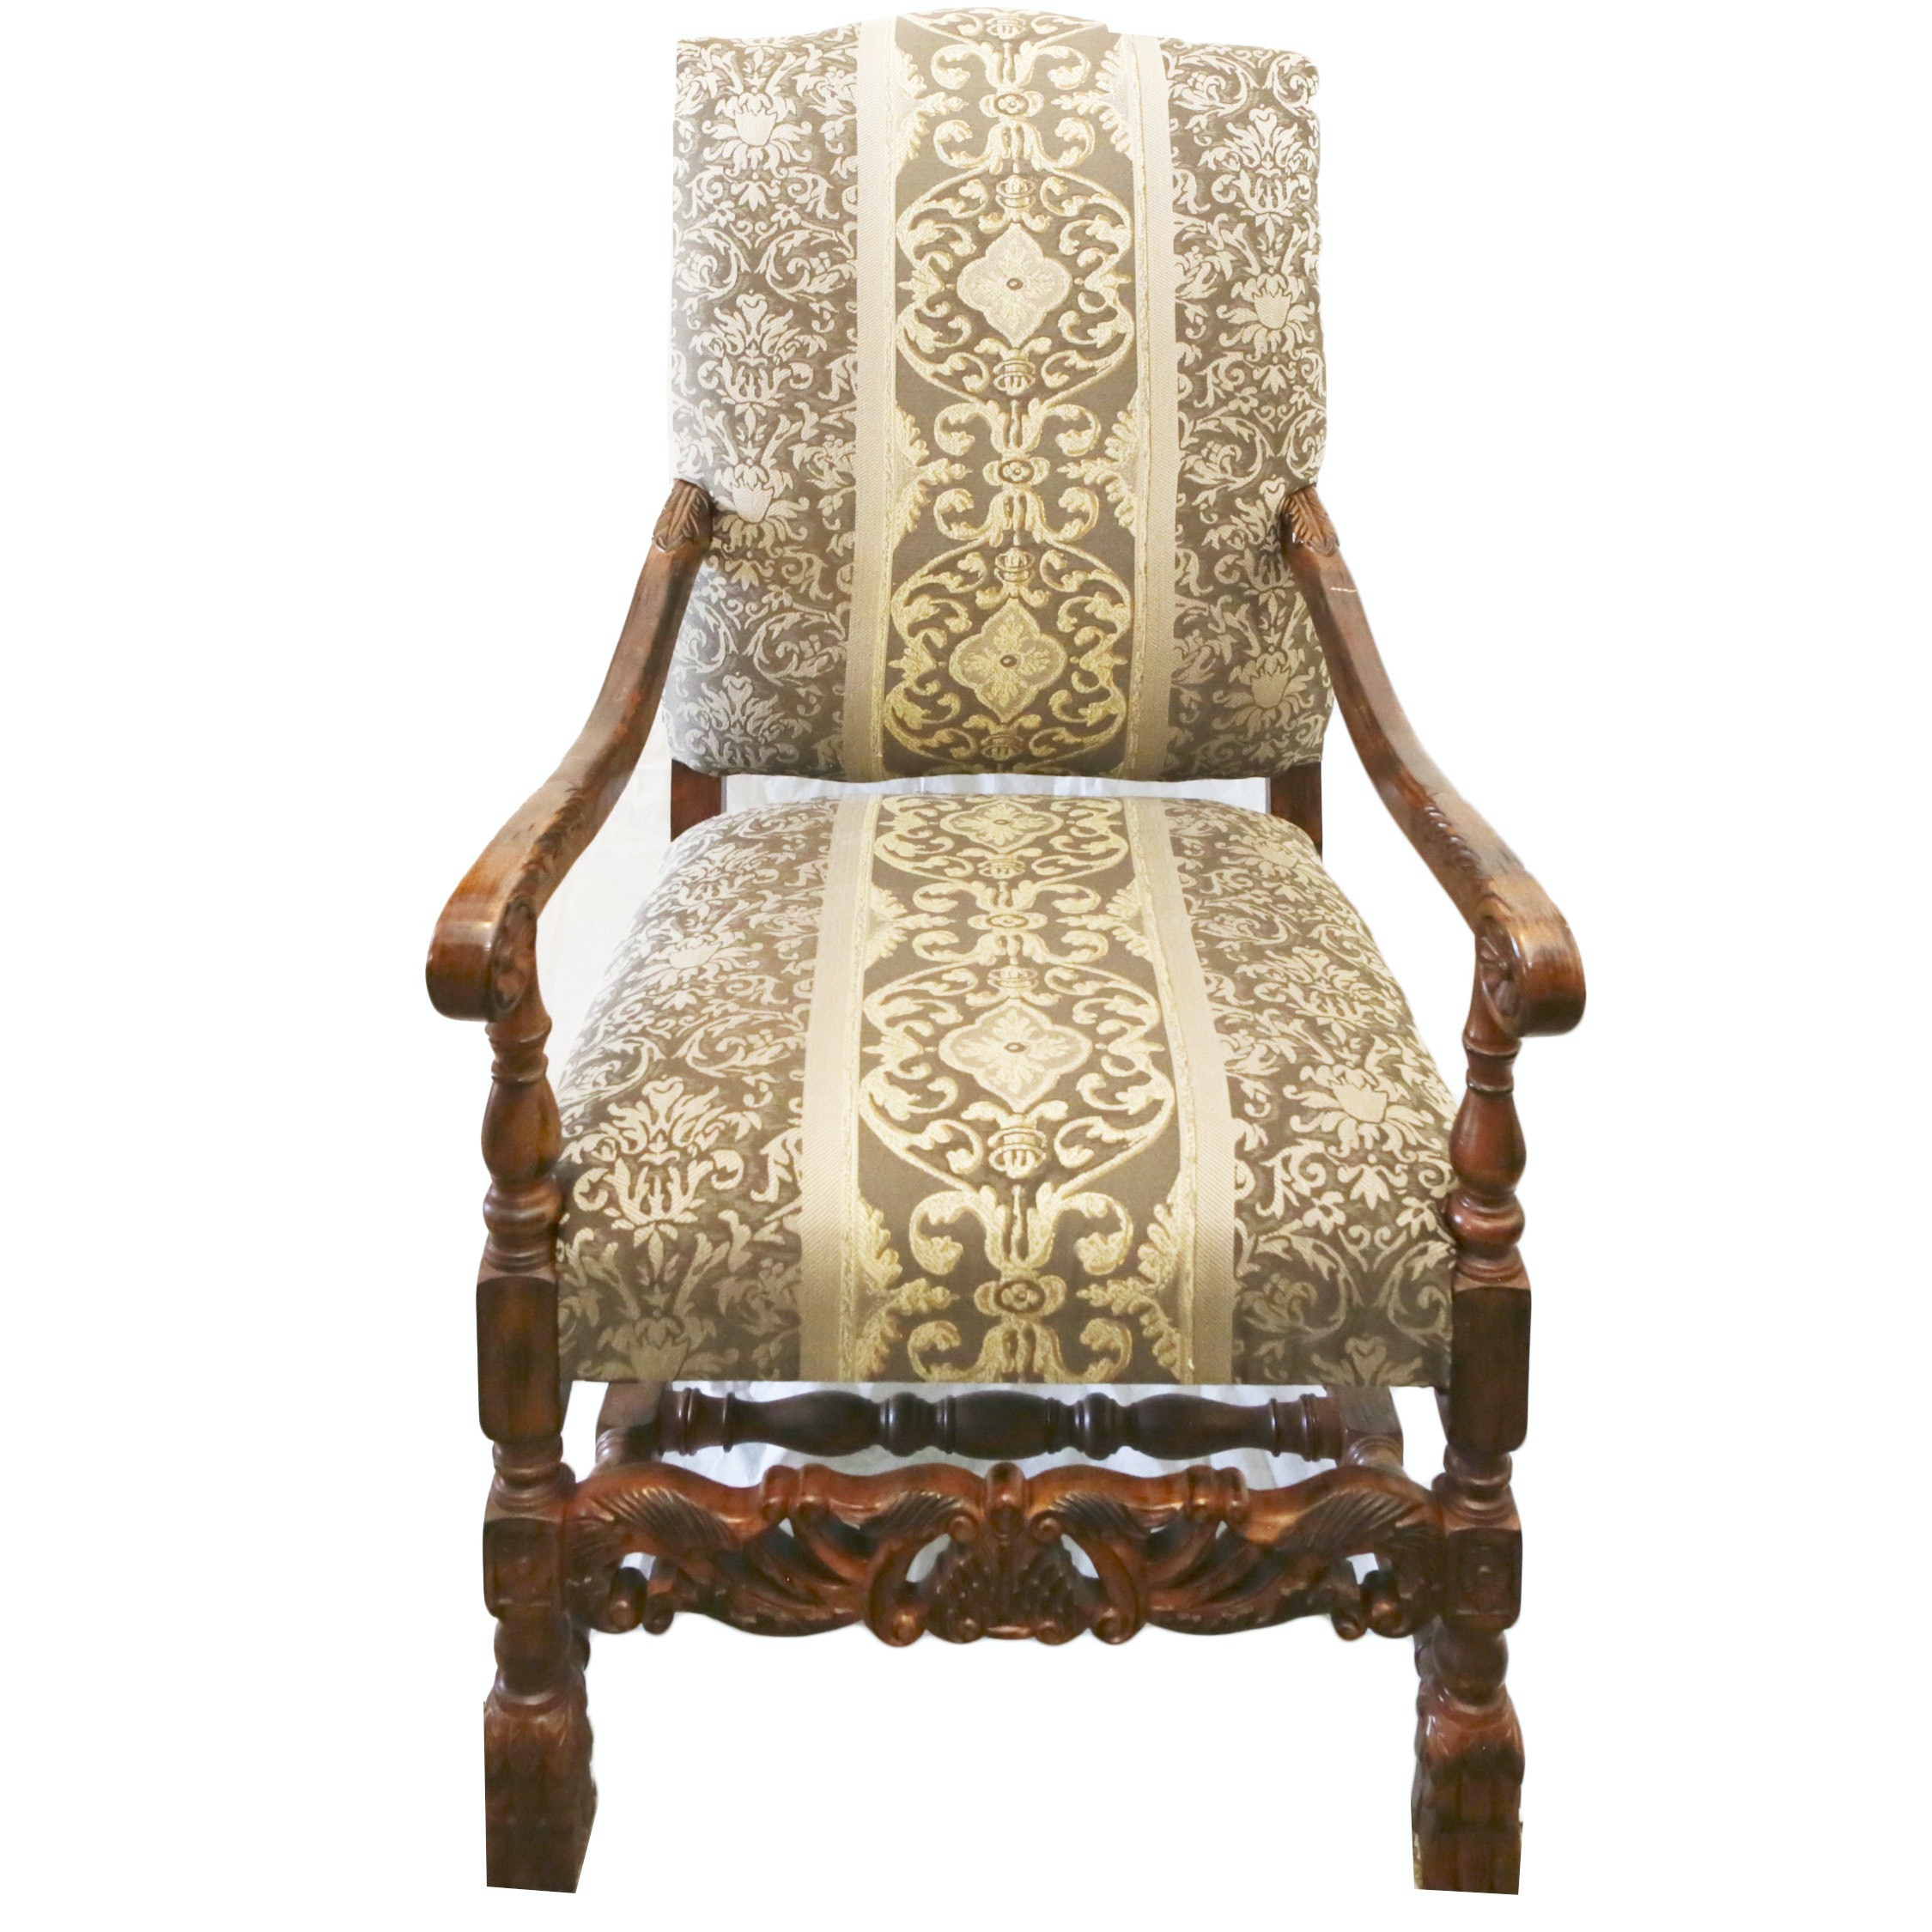 Contemporary Tudor Revival Style Upholstered Armchair